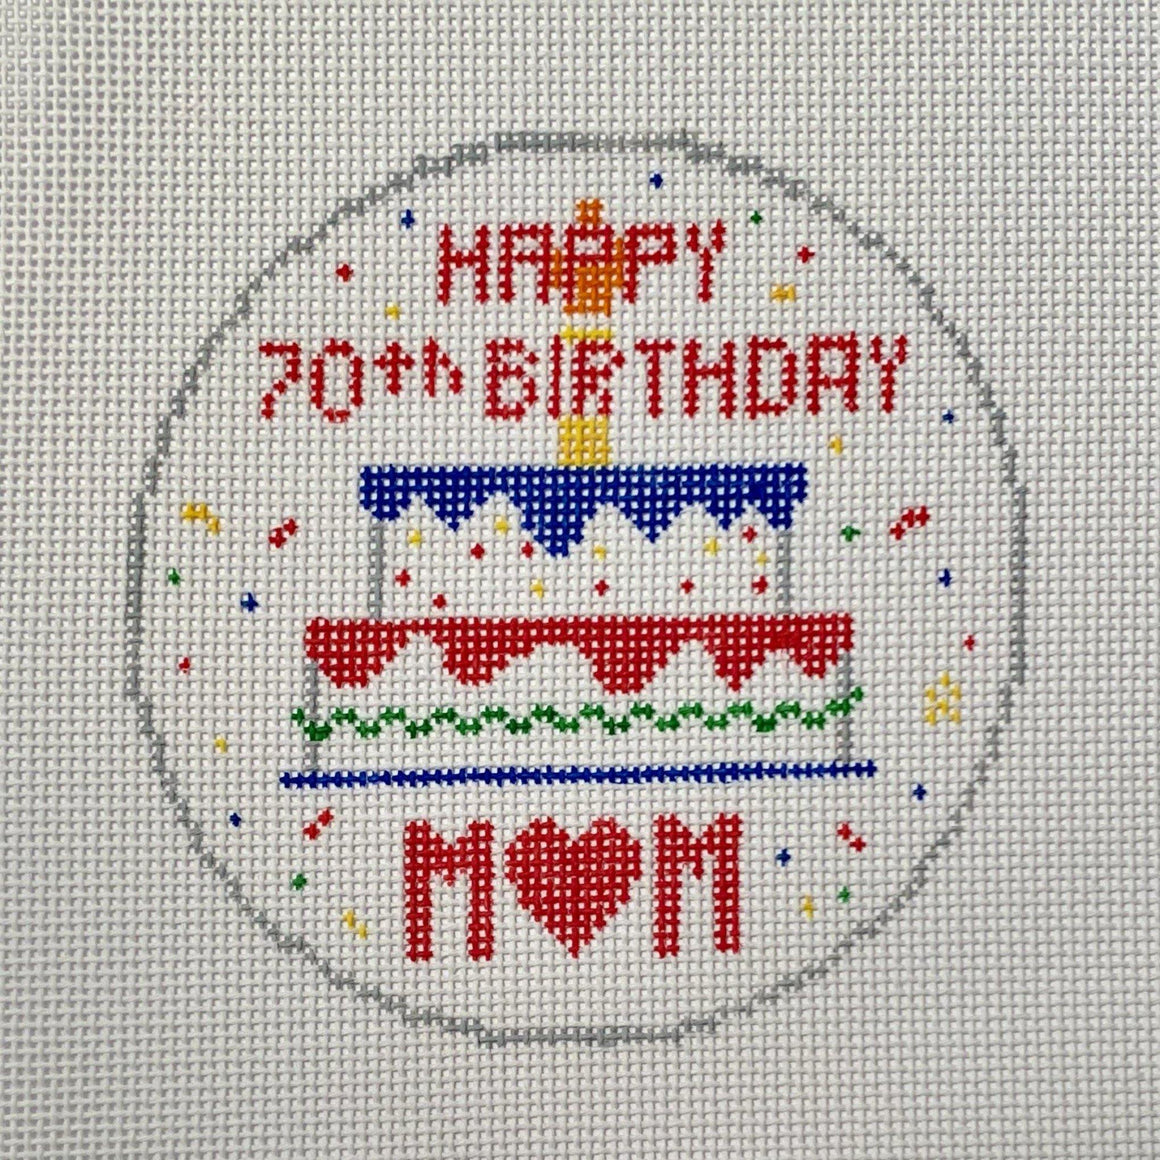 Birthday cake needlepoint ornament canvas - Needlepoint by Laura, LLC